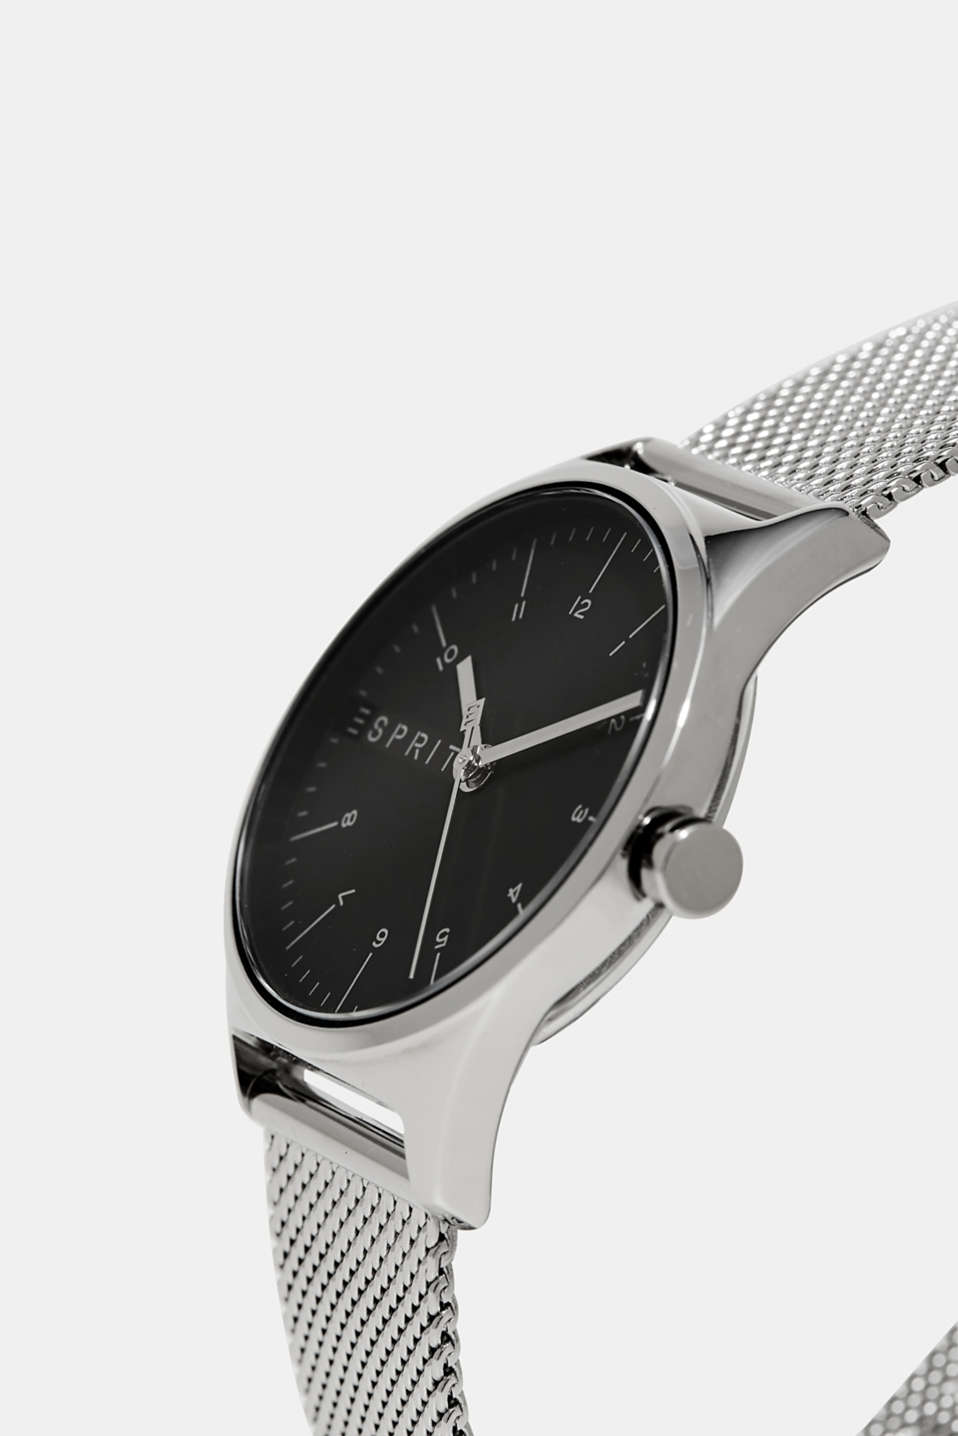 Mens watch with a Milanese strap